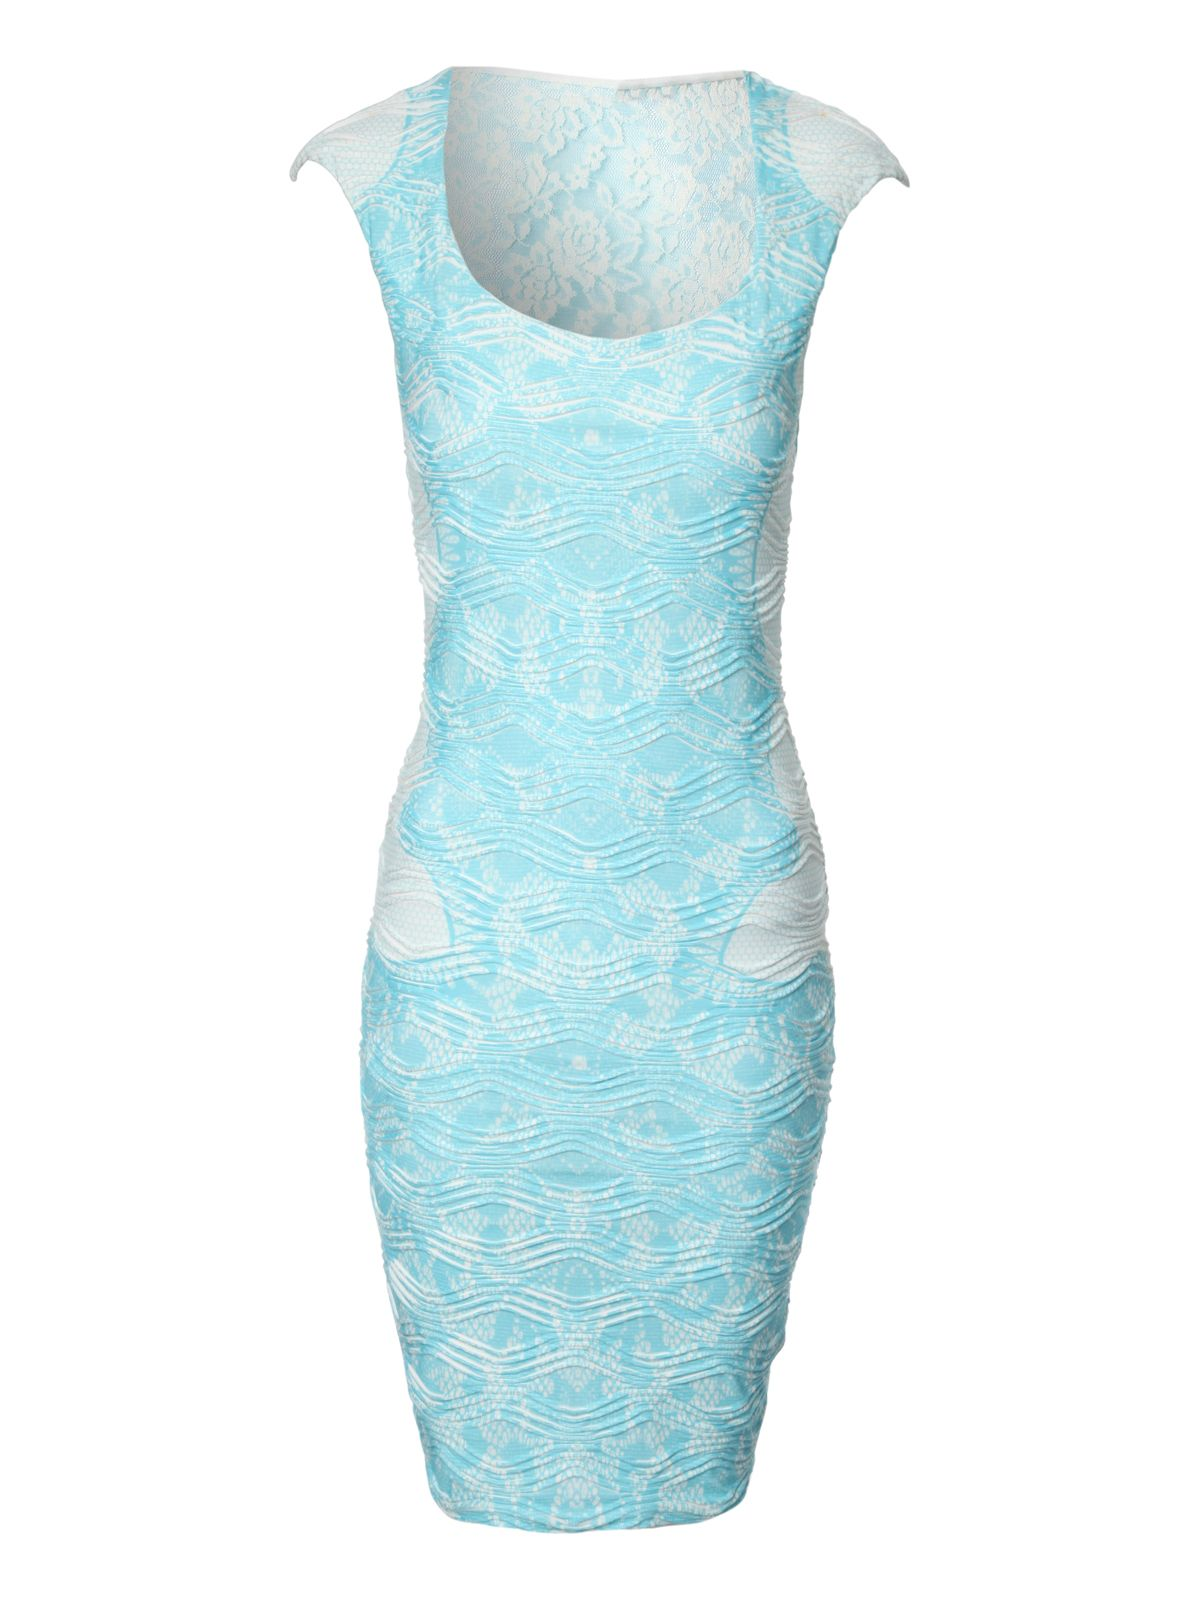 Printed Lace Detail Bodycon Dress